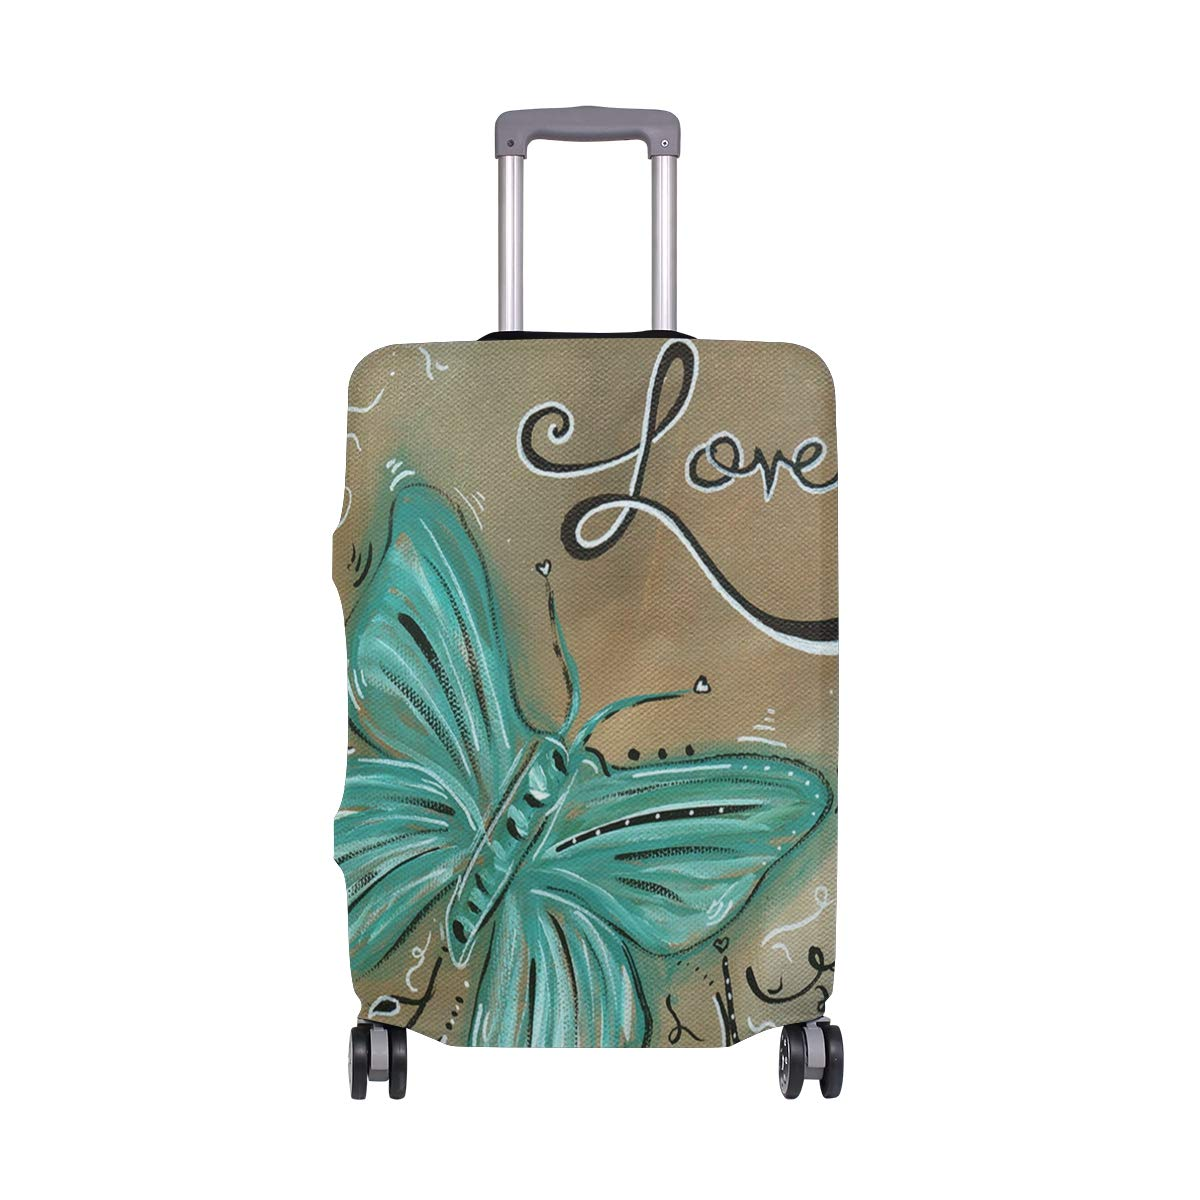 Live And Love Butterfly Travel Luggage Cover Suitcase Protector Fits 18'' - 32''